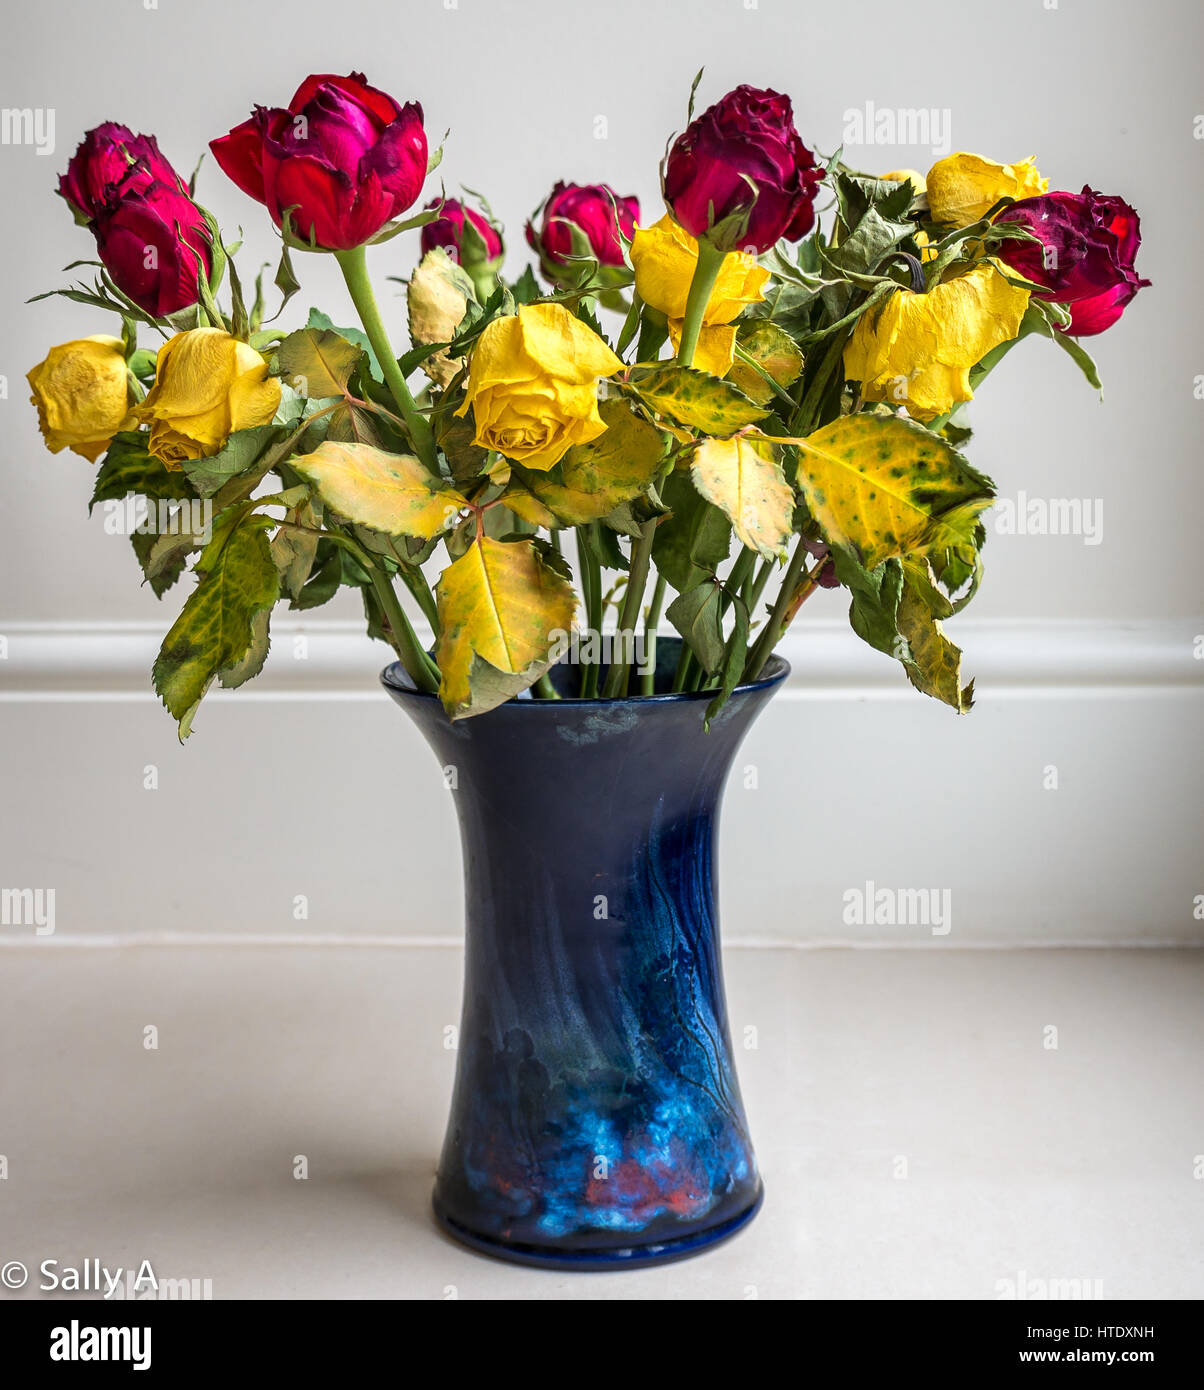 Faded Dying Dried Up Rose Flowers Arranged In Blue Ceramic Vase Stock Photo Alamy